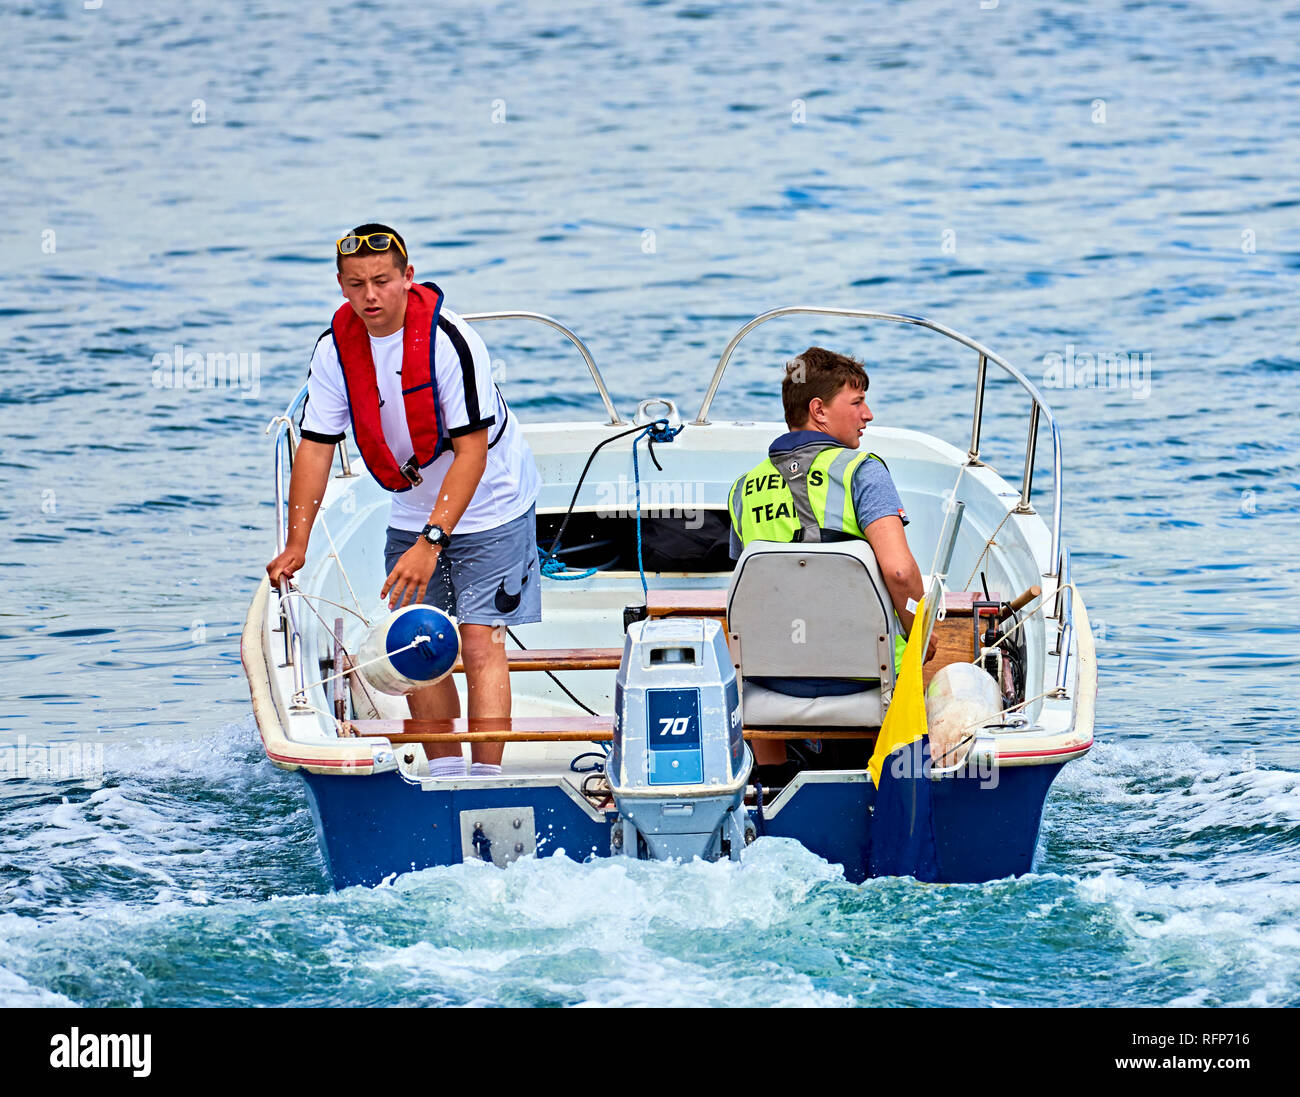 Two young men operate a small safety boat at a waterborne event. - Stock Image